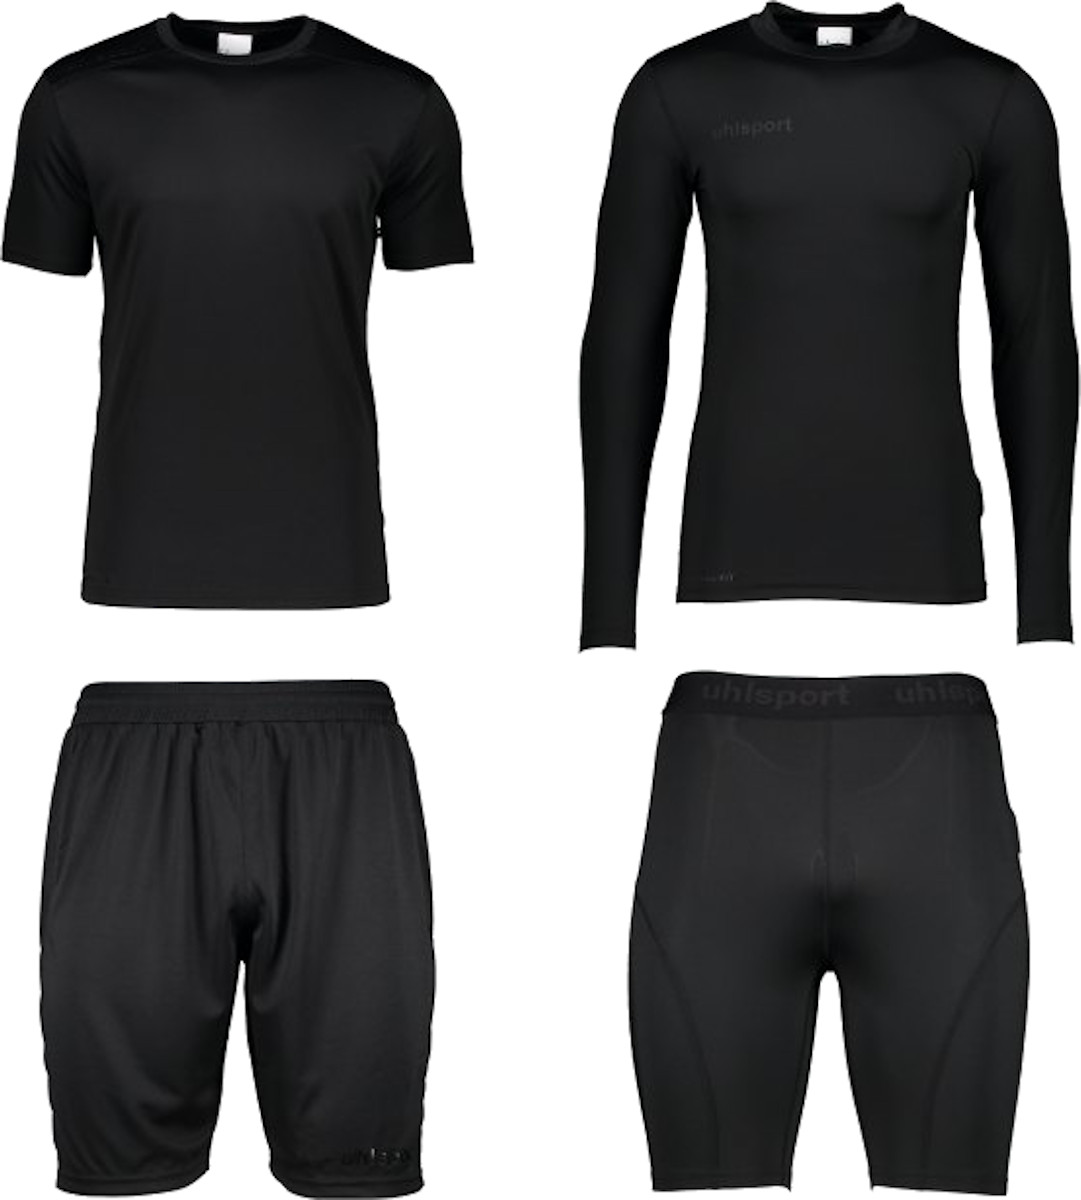 Kit Uhlsport Black Edition GK Set Kids